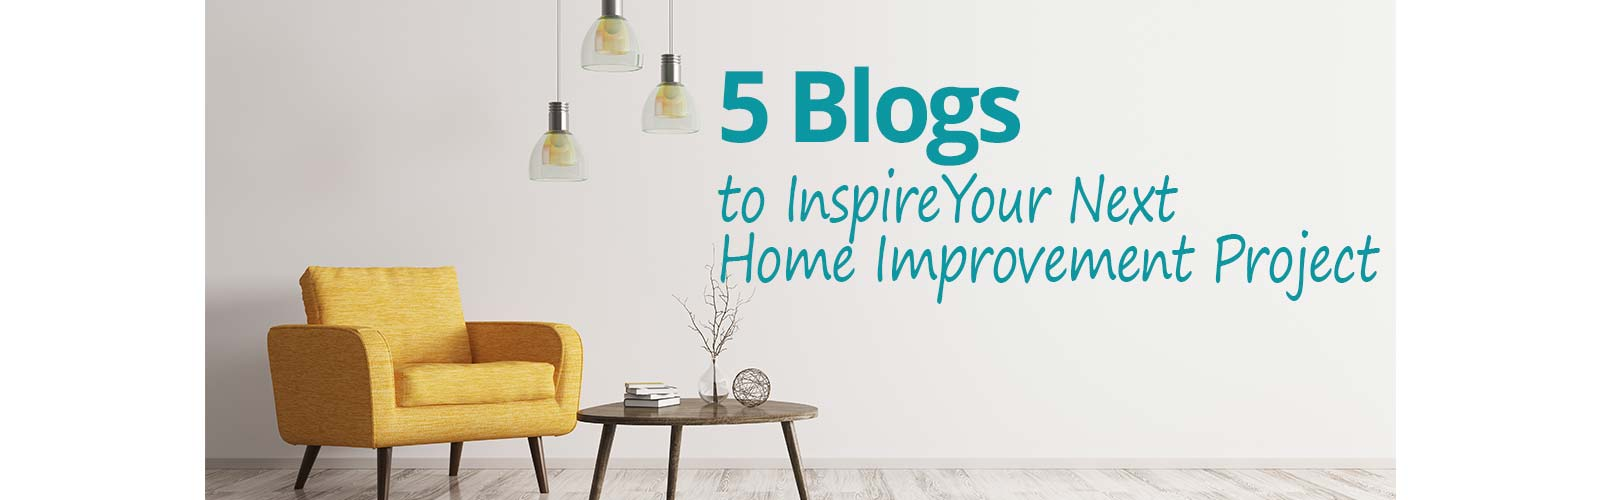 Do Yourself Home Improvement Project 5 Blogs To Inspire Your Next Home Improvement Project